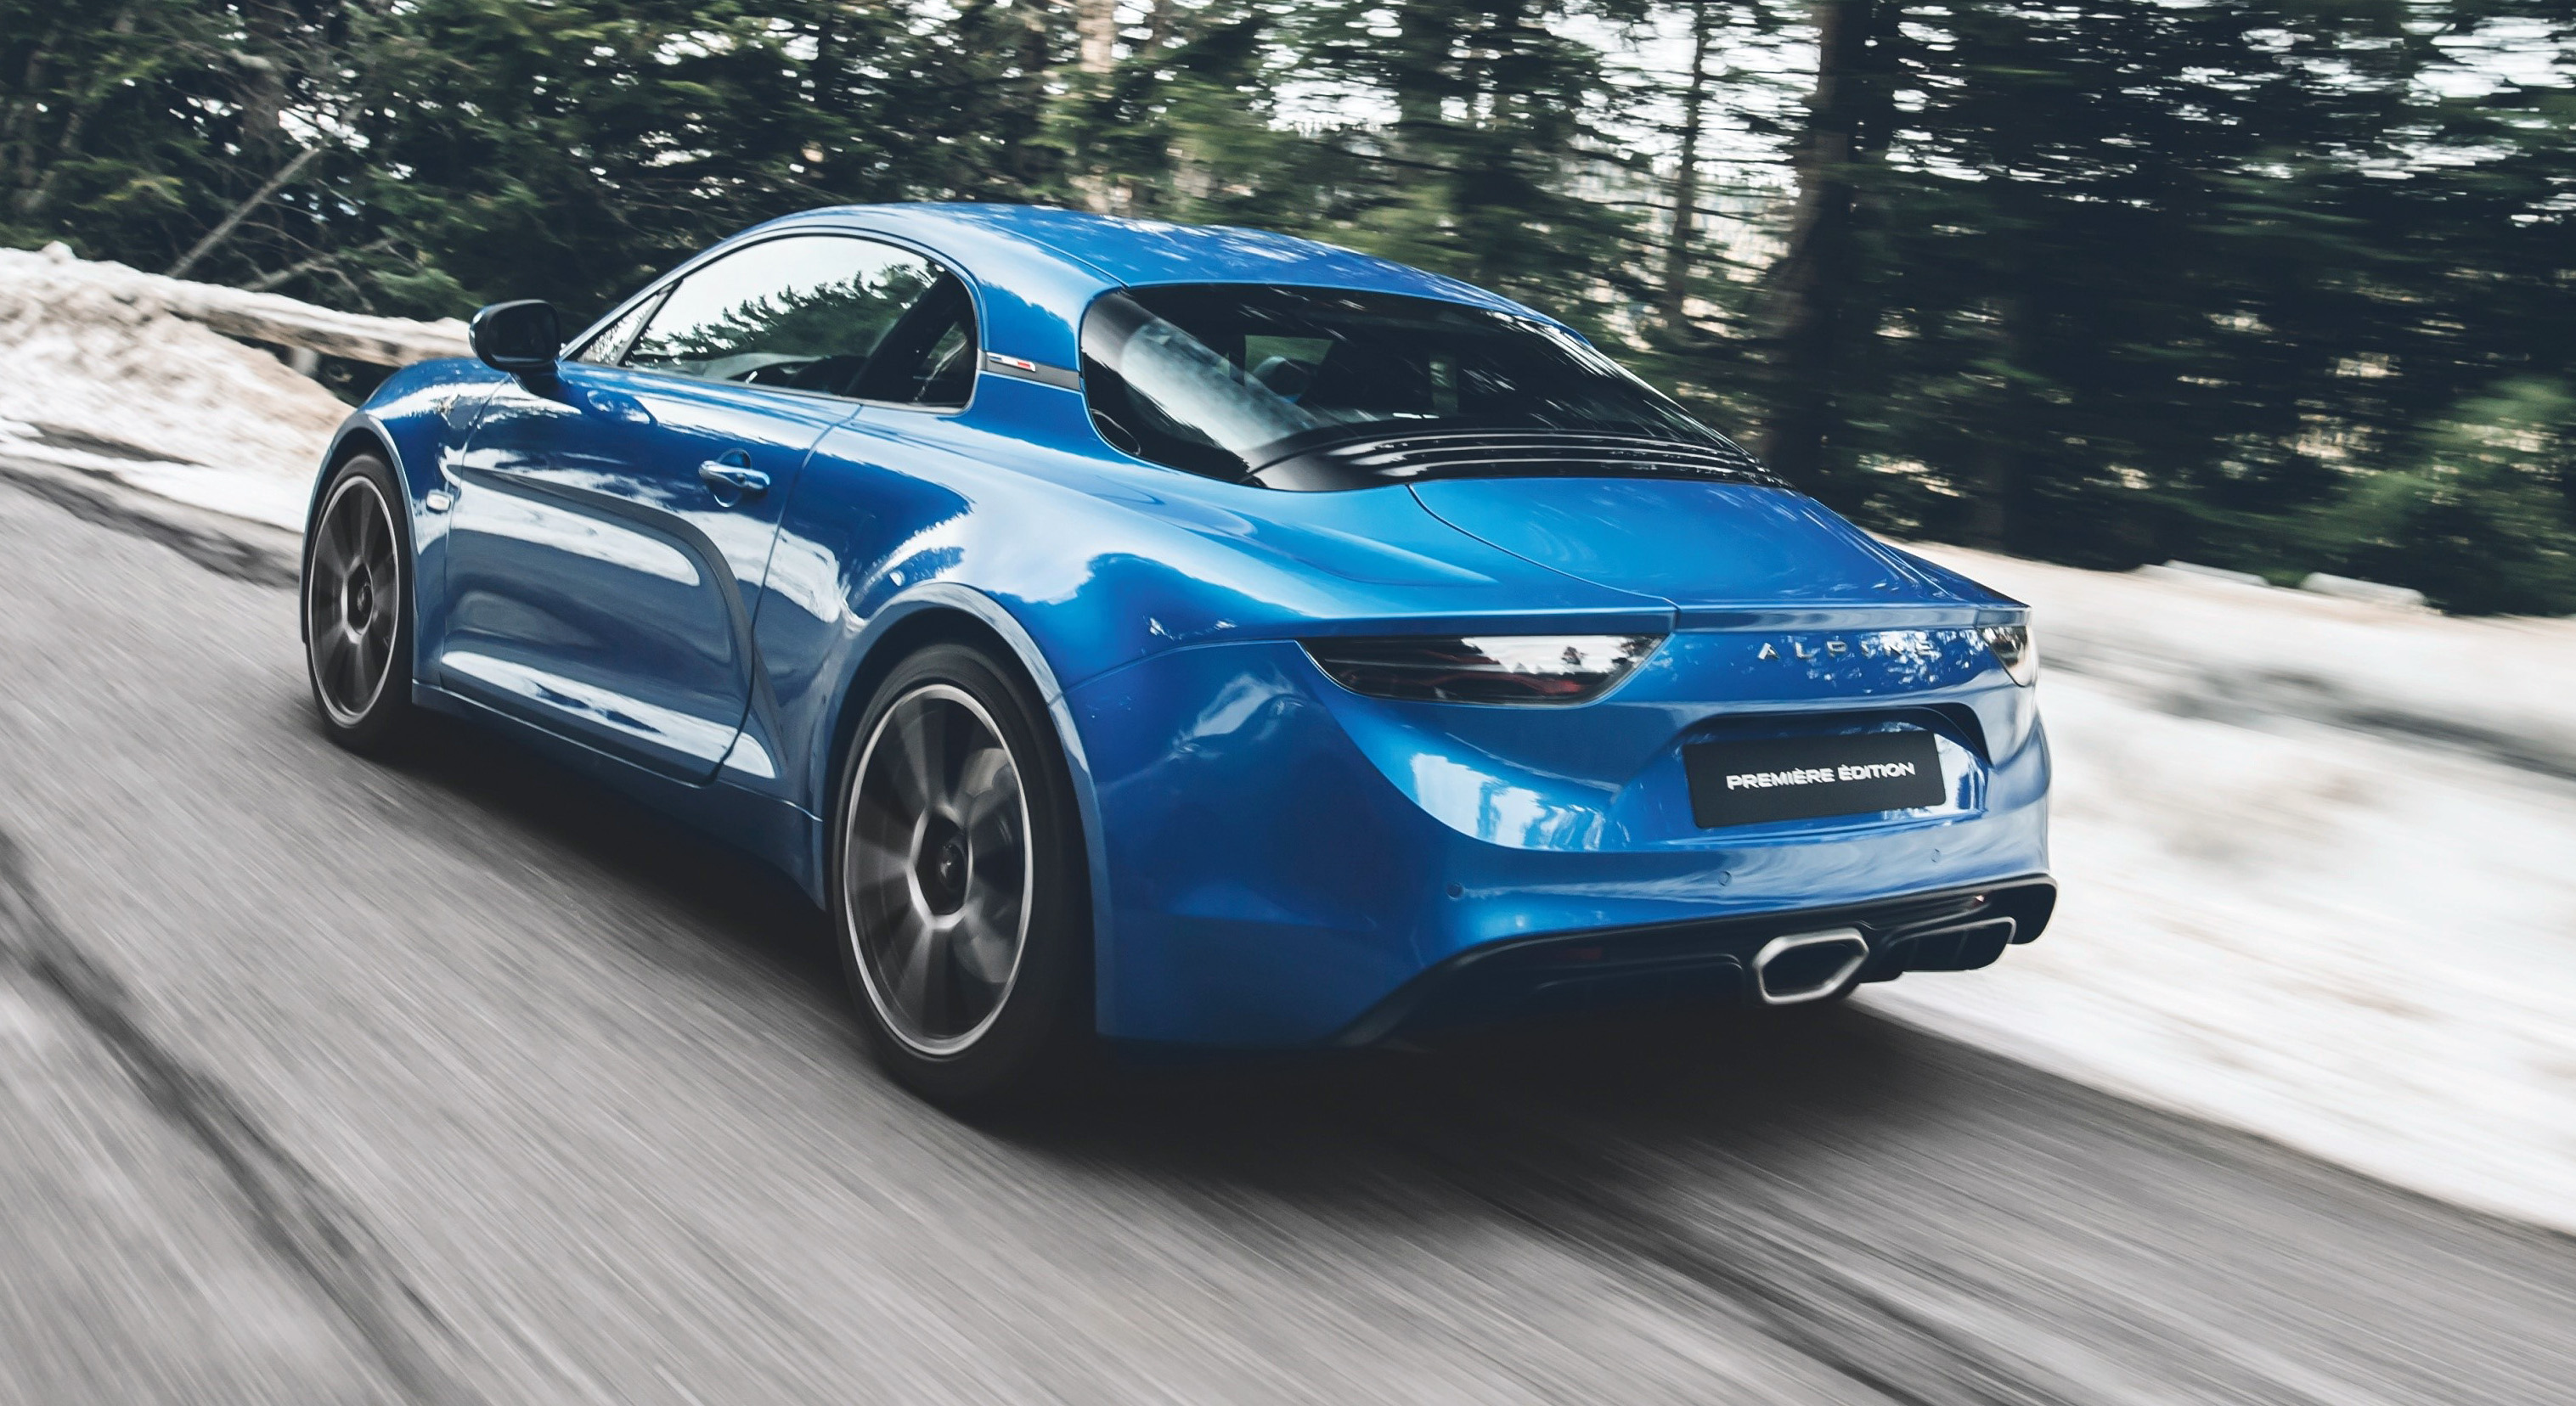 2018 Alpine A110 detailed: video - Photos (1 of 25)